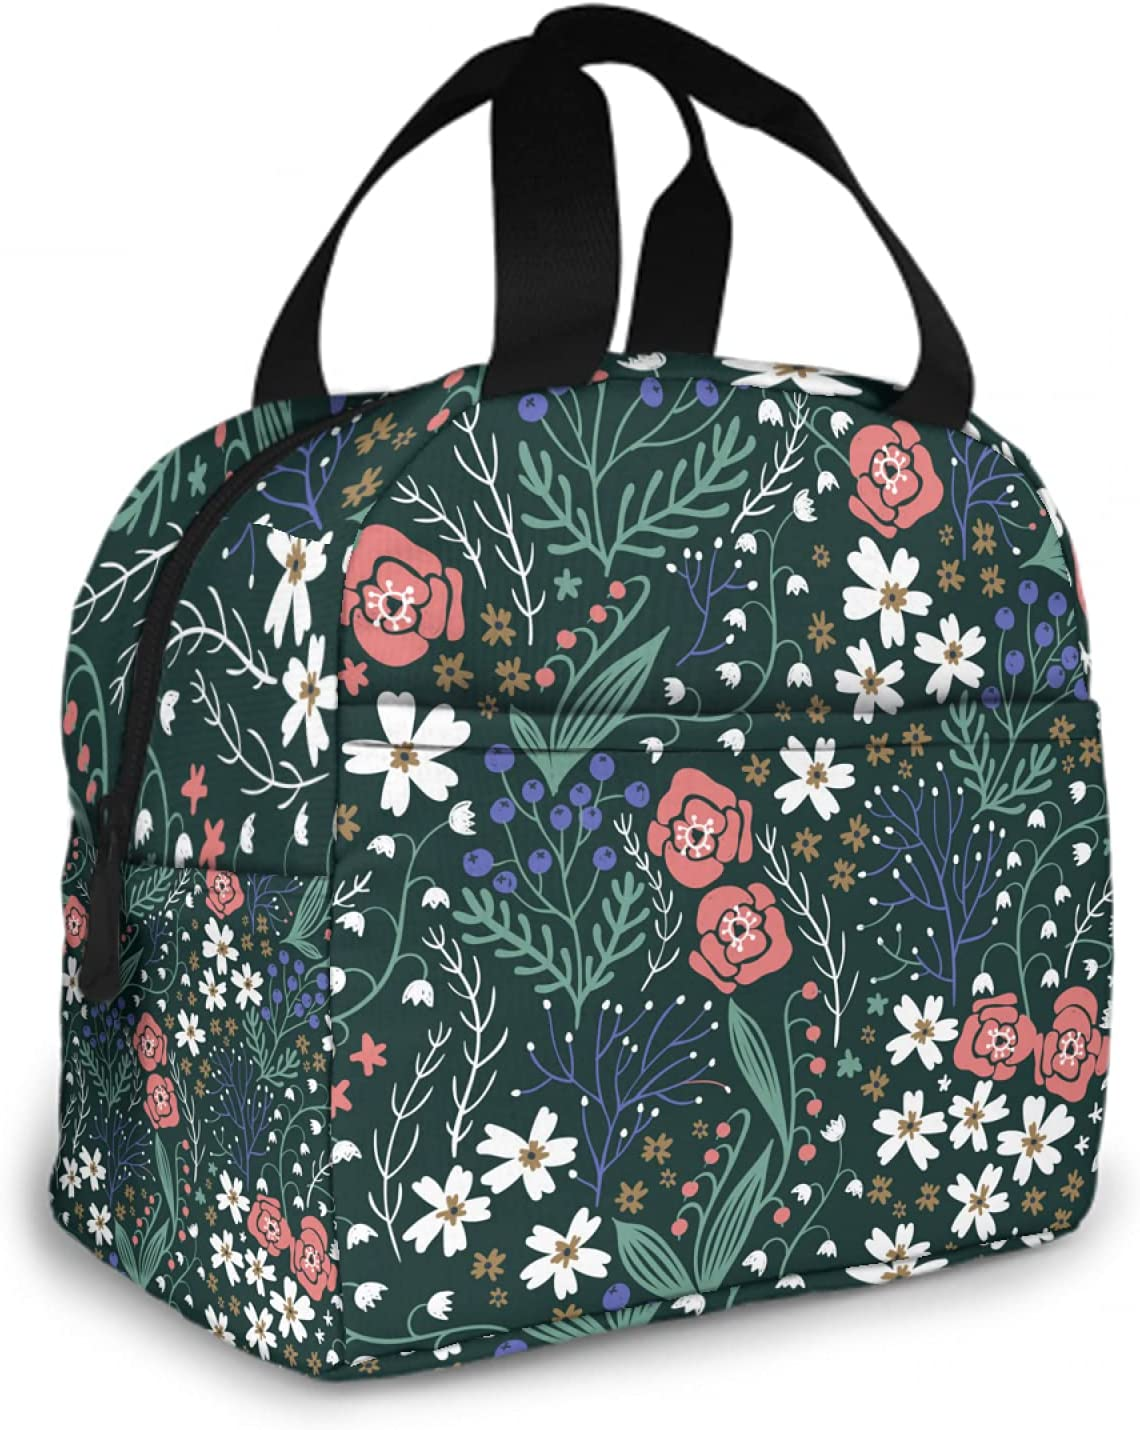 OcuteO Reusable Insulated Lunch Bag Floral Blooming Summer Flowe